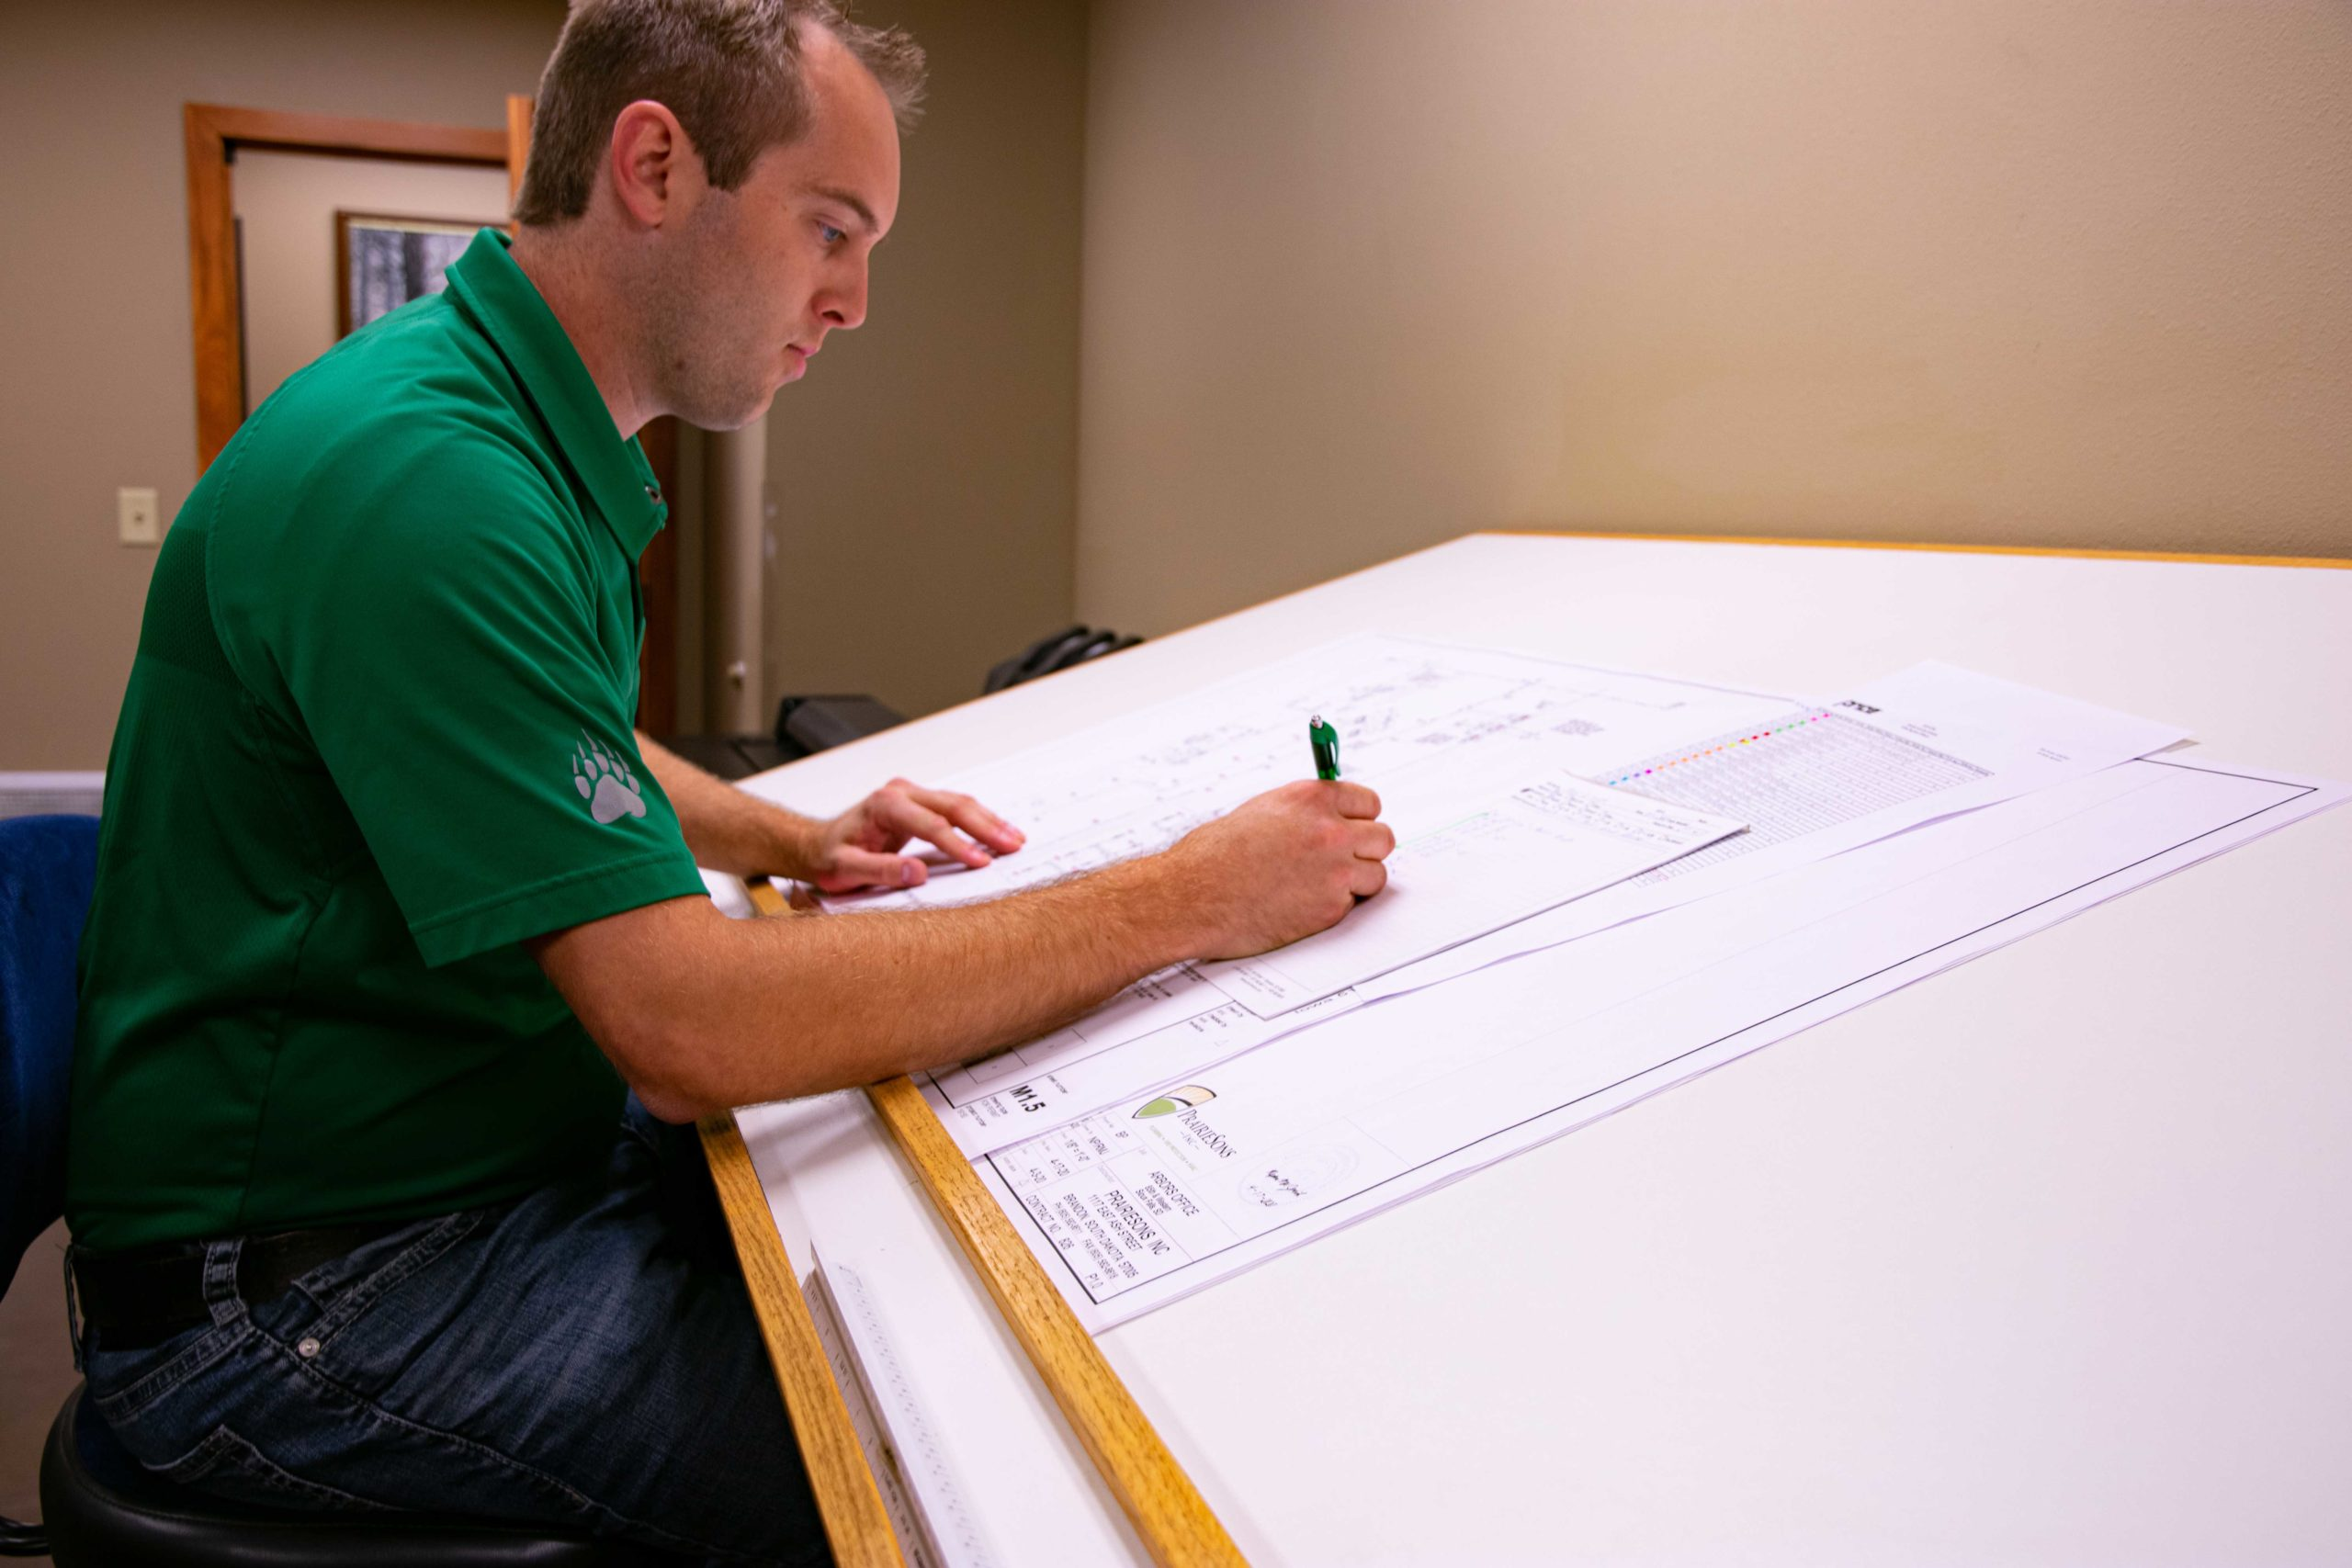 PrairieSons Technician Planning for Project